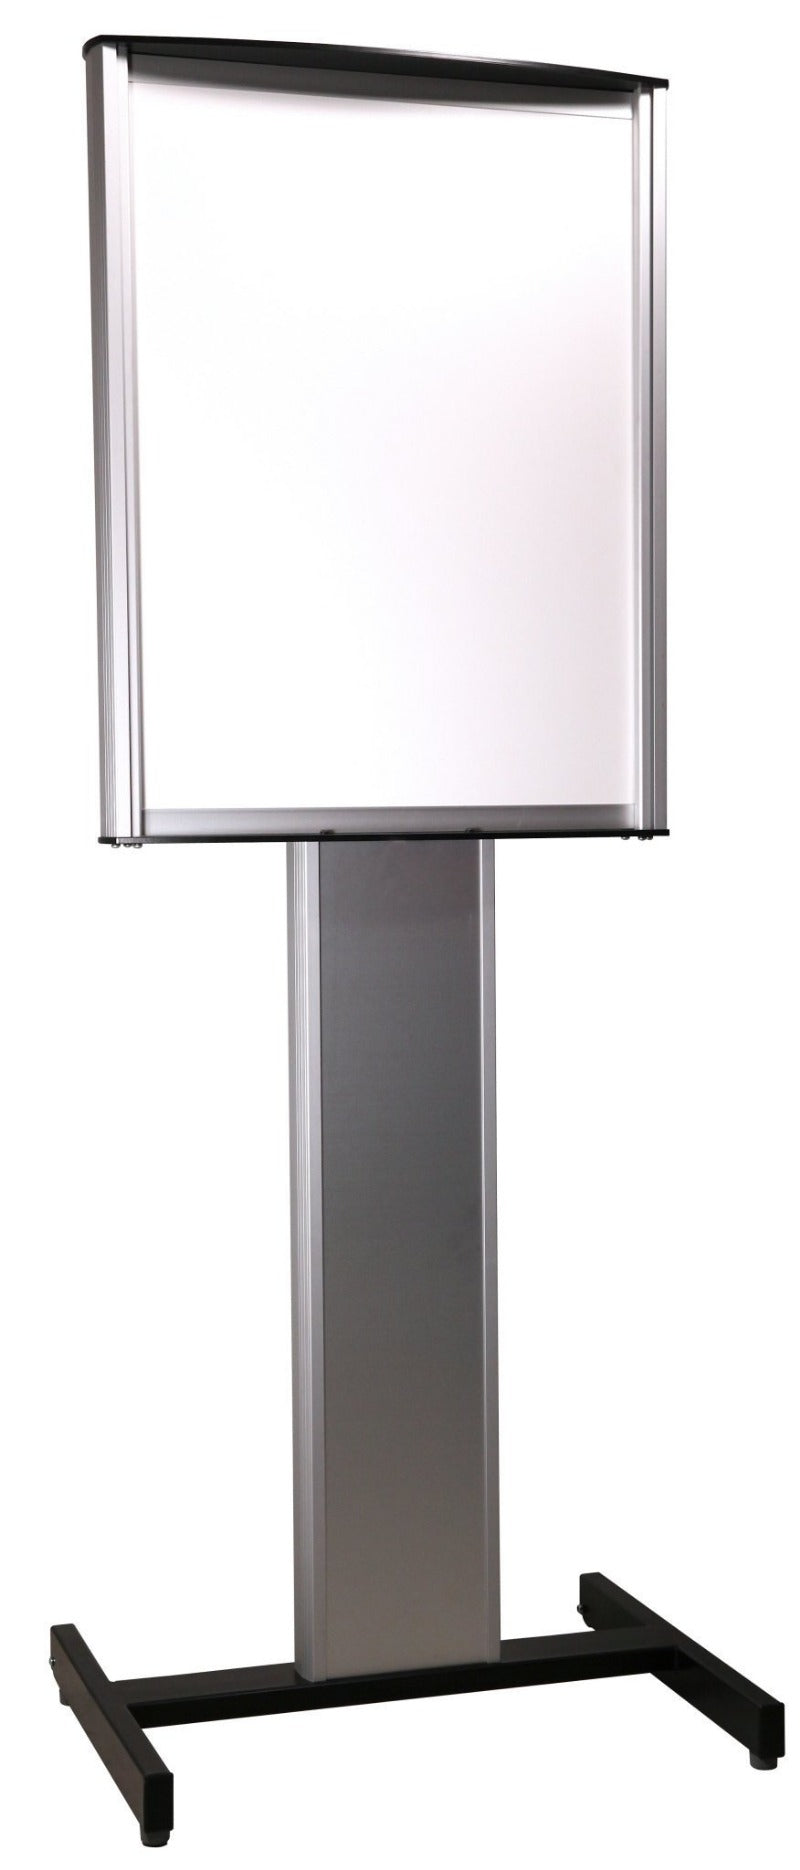 "Versa Heavy-Duty Sign Stand | 24"" X 36"" Frame 